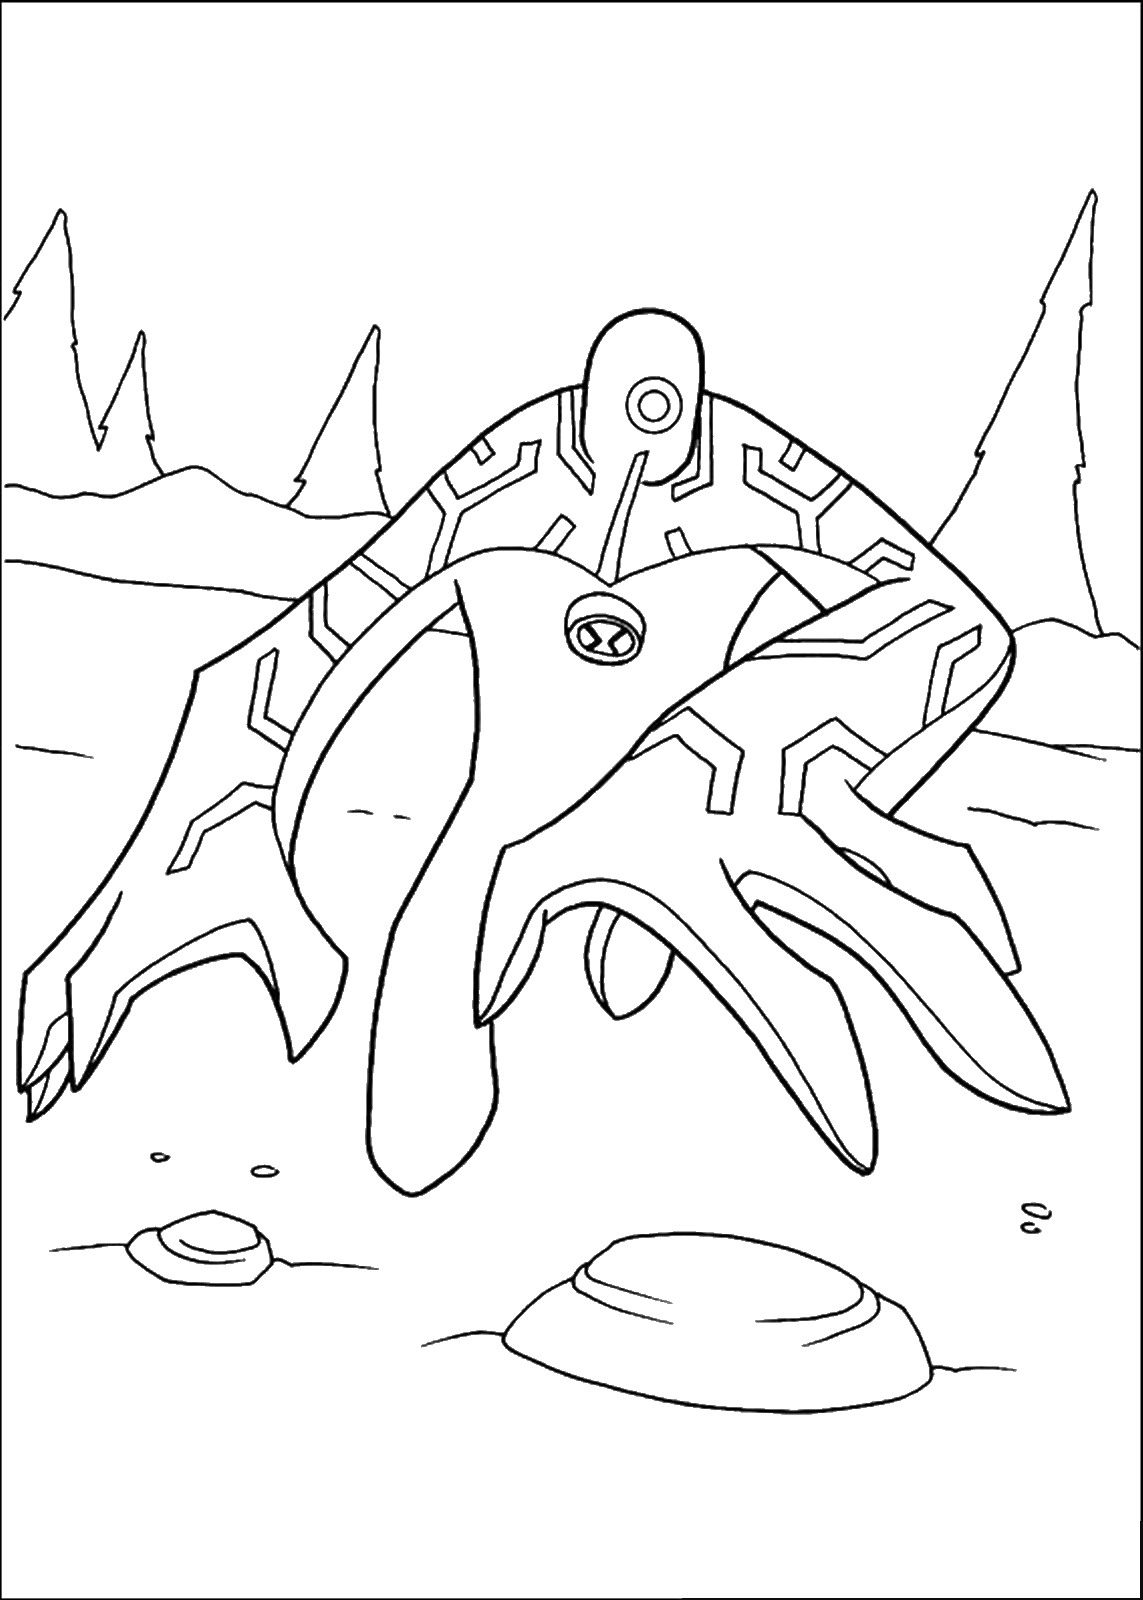 ben10 coloring ben 10 alien force coloring pages at getcoloringscom ben10 coloring